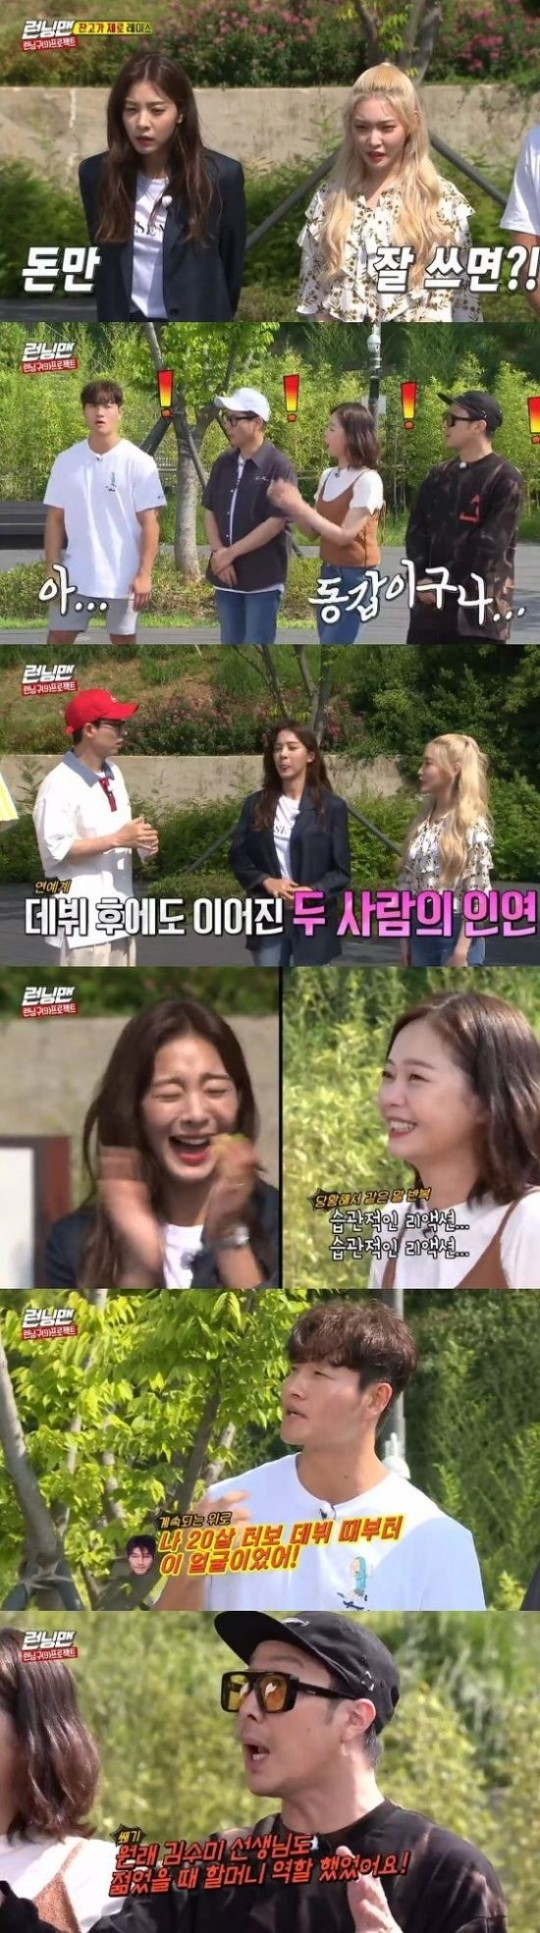 """<p>Actor Seol In-ah the young and the same goes this dance school motivation revealed that Sight, and all did.</p><p>Seol In-ah and to 23 broadcast SBS art program 'Running Man'as a guest appeared. The two day broadcast, in middle school, when along with other dance school in the same man, 23 years old same agesaid. In this panel, they were two people of the same gloves becausea startled man Seol In-ah is """"why the same goes to say that the surprise is going,""""said Huff for a laugh, I found myself in.</p><p>This in flip final States """"Im a turbo debut from the time this was the face he said,""""and that """"Kim Soo mean Sensei was young when my grandmother had a role,""""said Seol In-ah for Brosnan said.</p><p>Other Seol In-ah and Zheng together to the hit song already 12 oclock joint dance more than anything. Running Man panel is only one day to fit the saw that cant believe,said of two people breathing in the admiration was.</p><p>Running Man Seol In-ah Zheng and the same goes this dance school motivation</p>"""